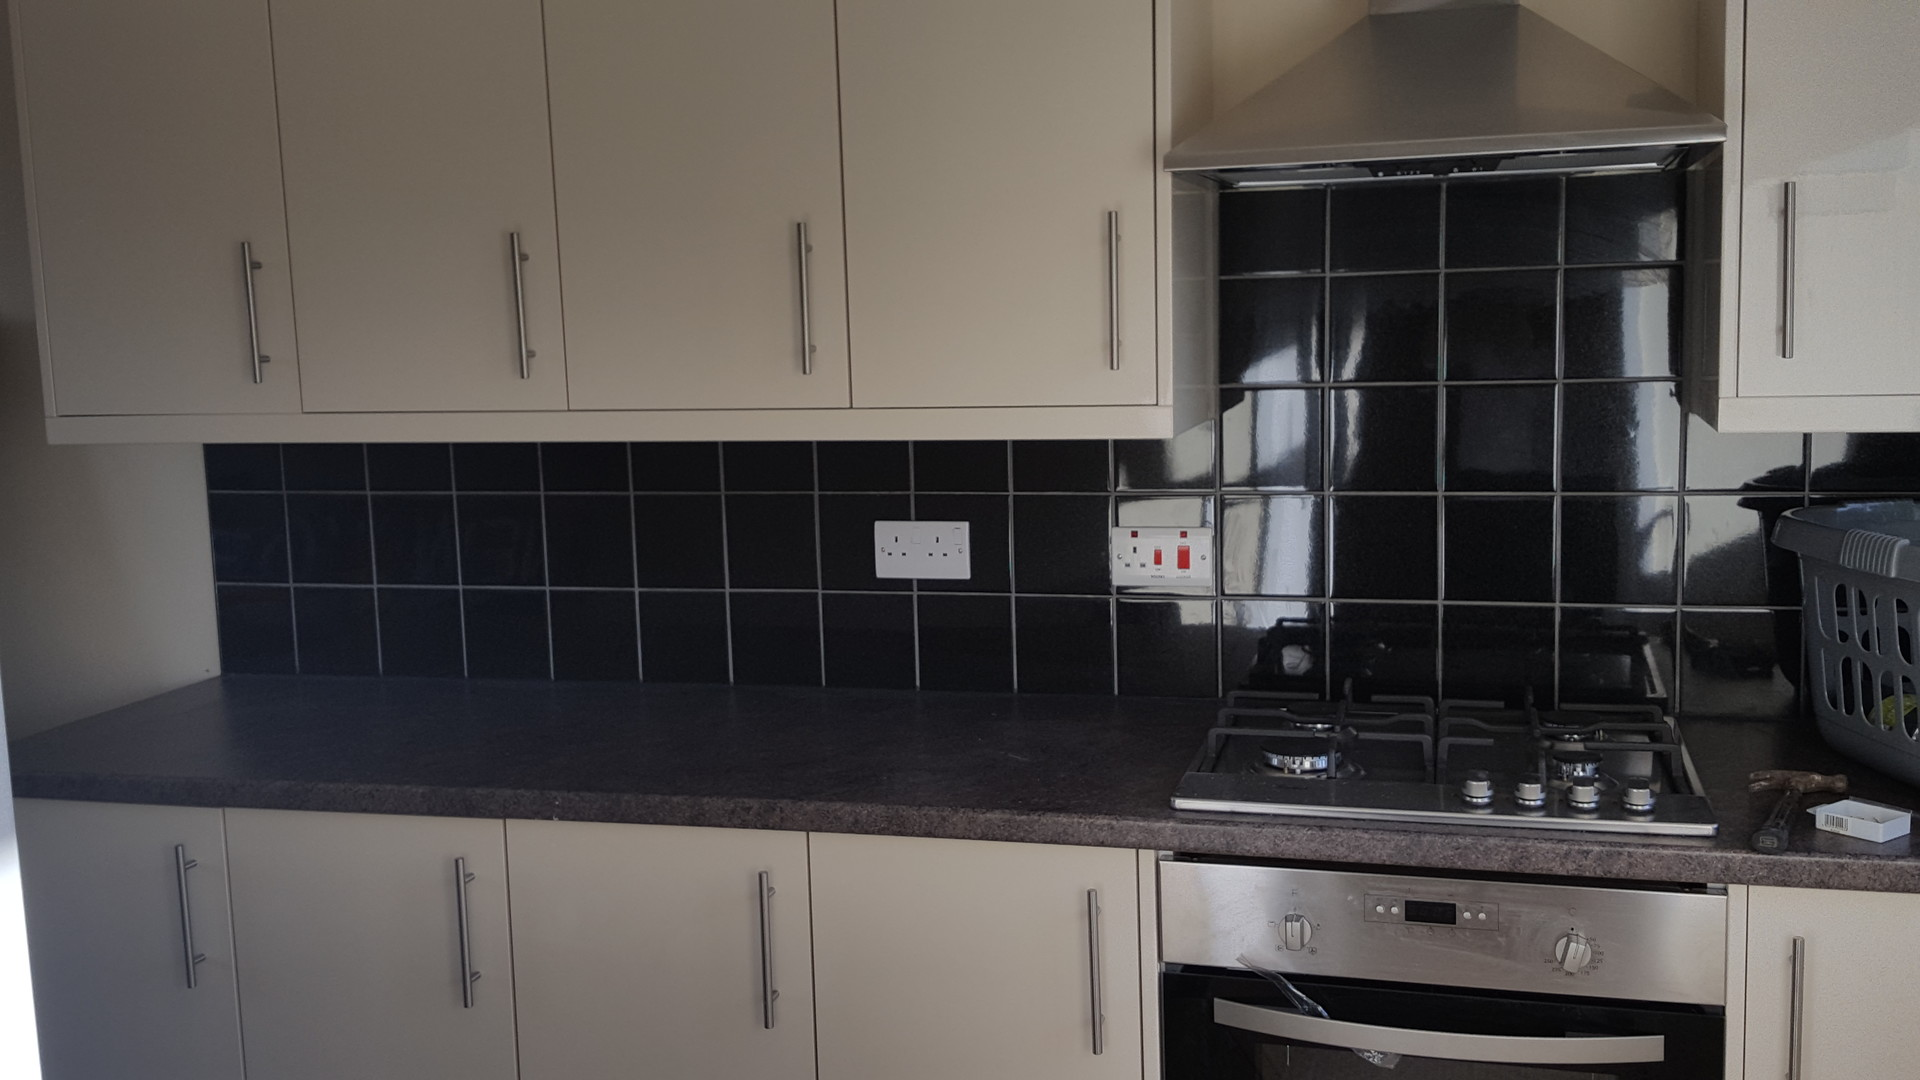 lovely-newly-refurbished-double-rooms-shared-house-redditch-worcestershire-9edd58d7f910f4688122c9cca25217e3.jpg